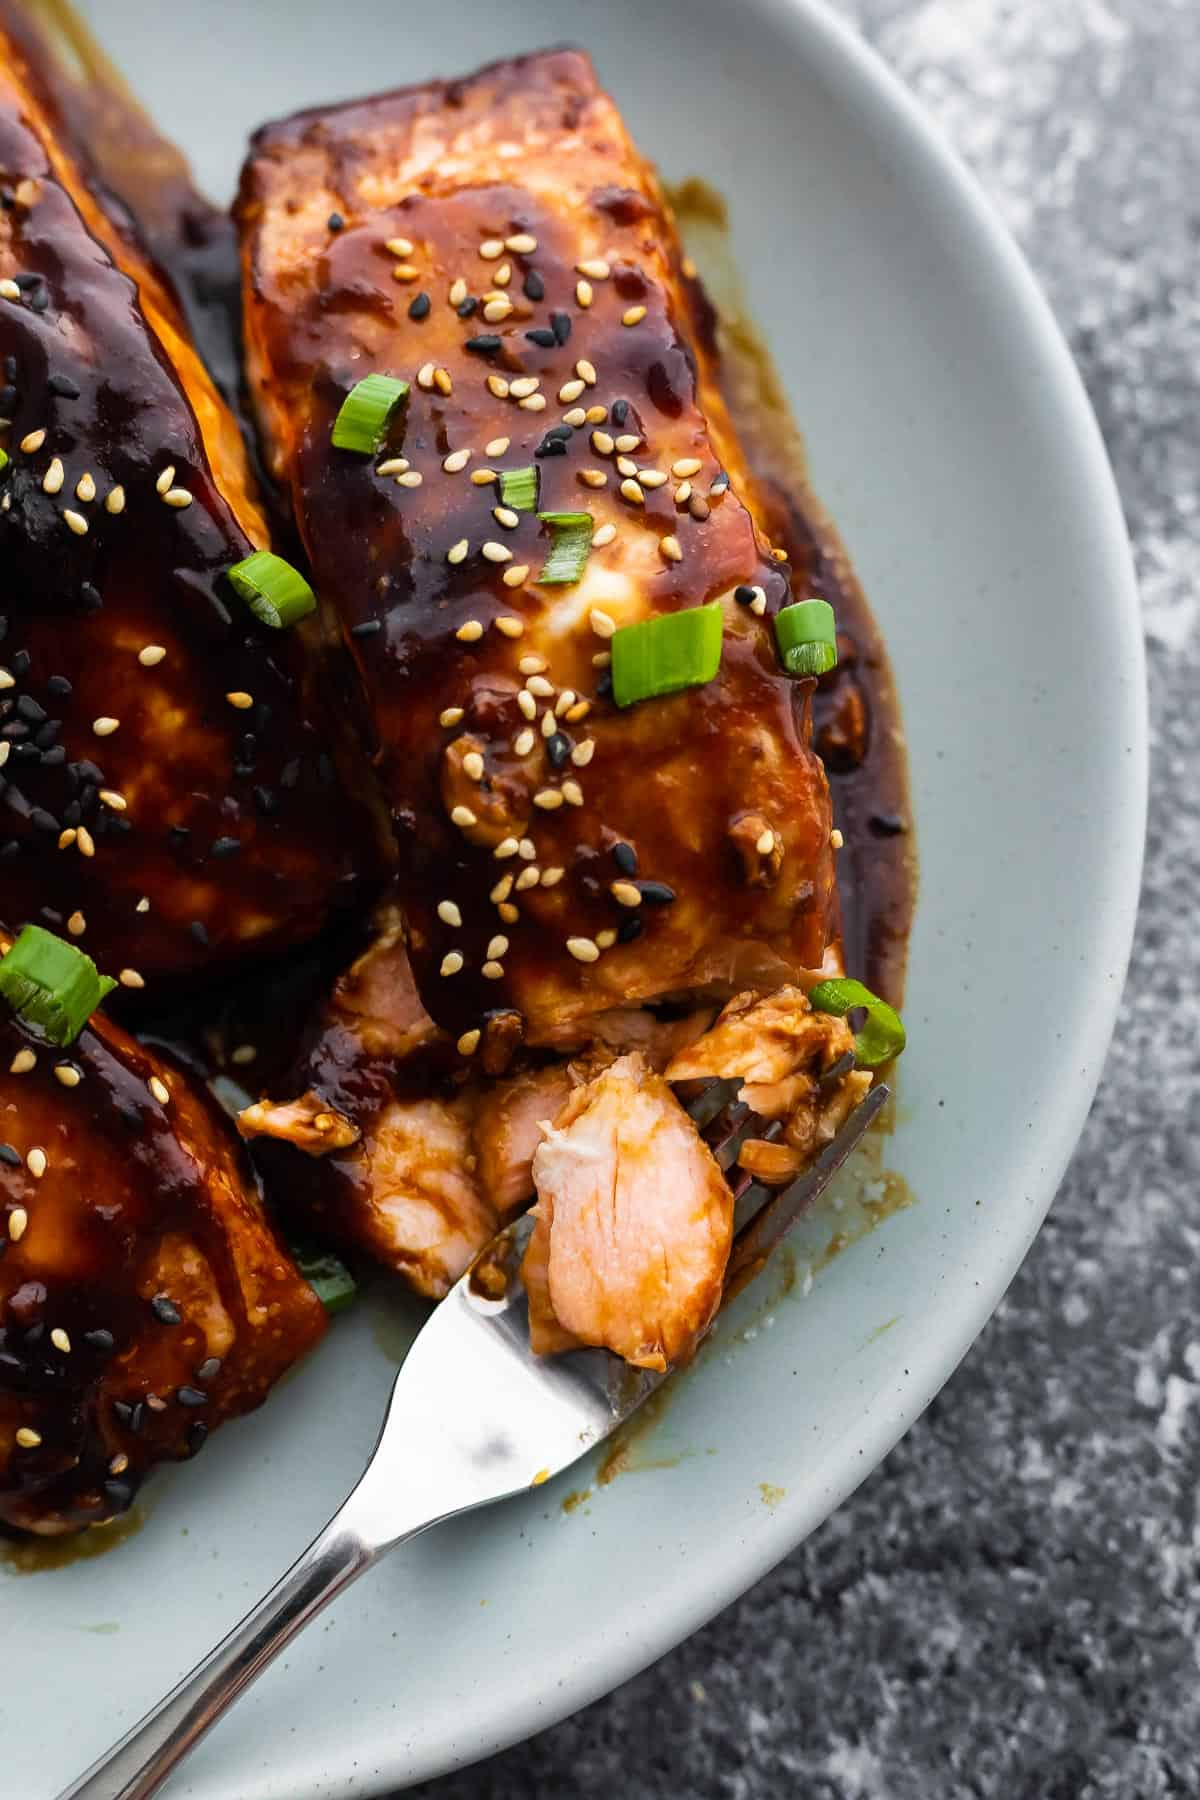 close up shot of teriyaki glazed salmon on plate with fork showing inside of salmon